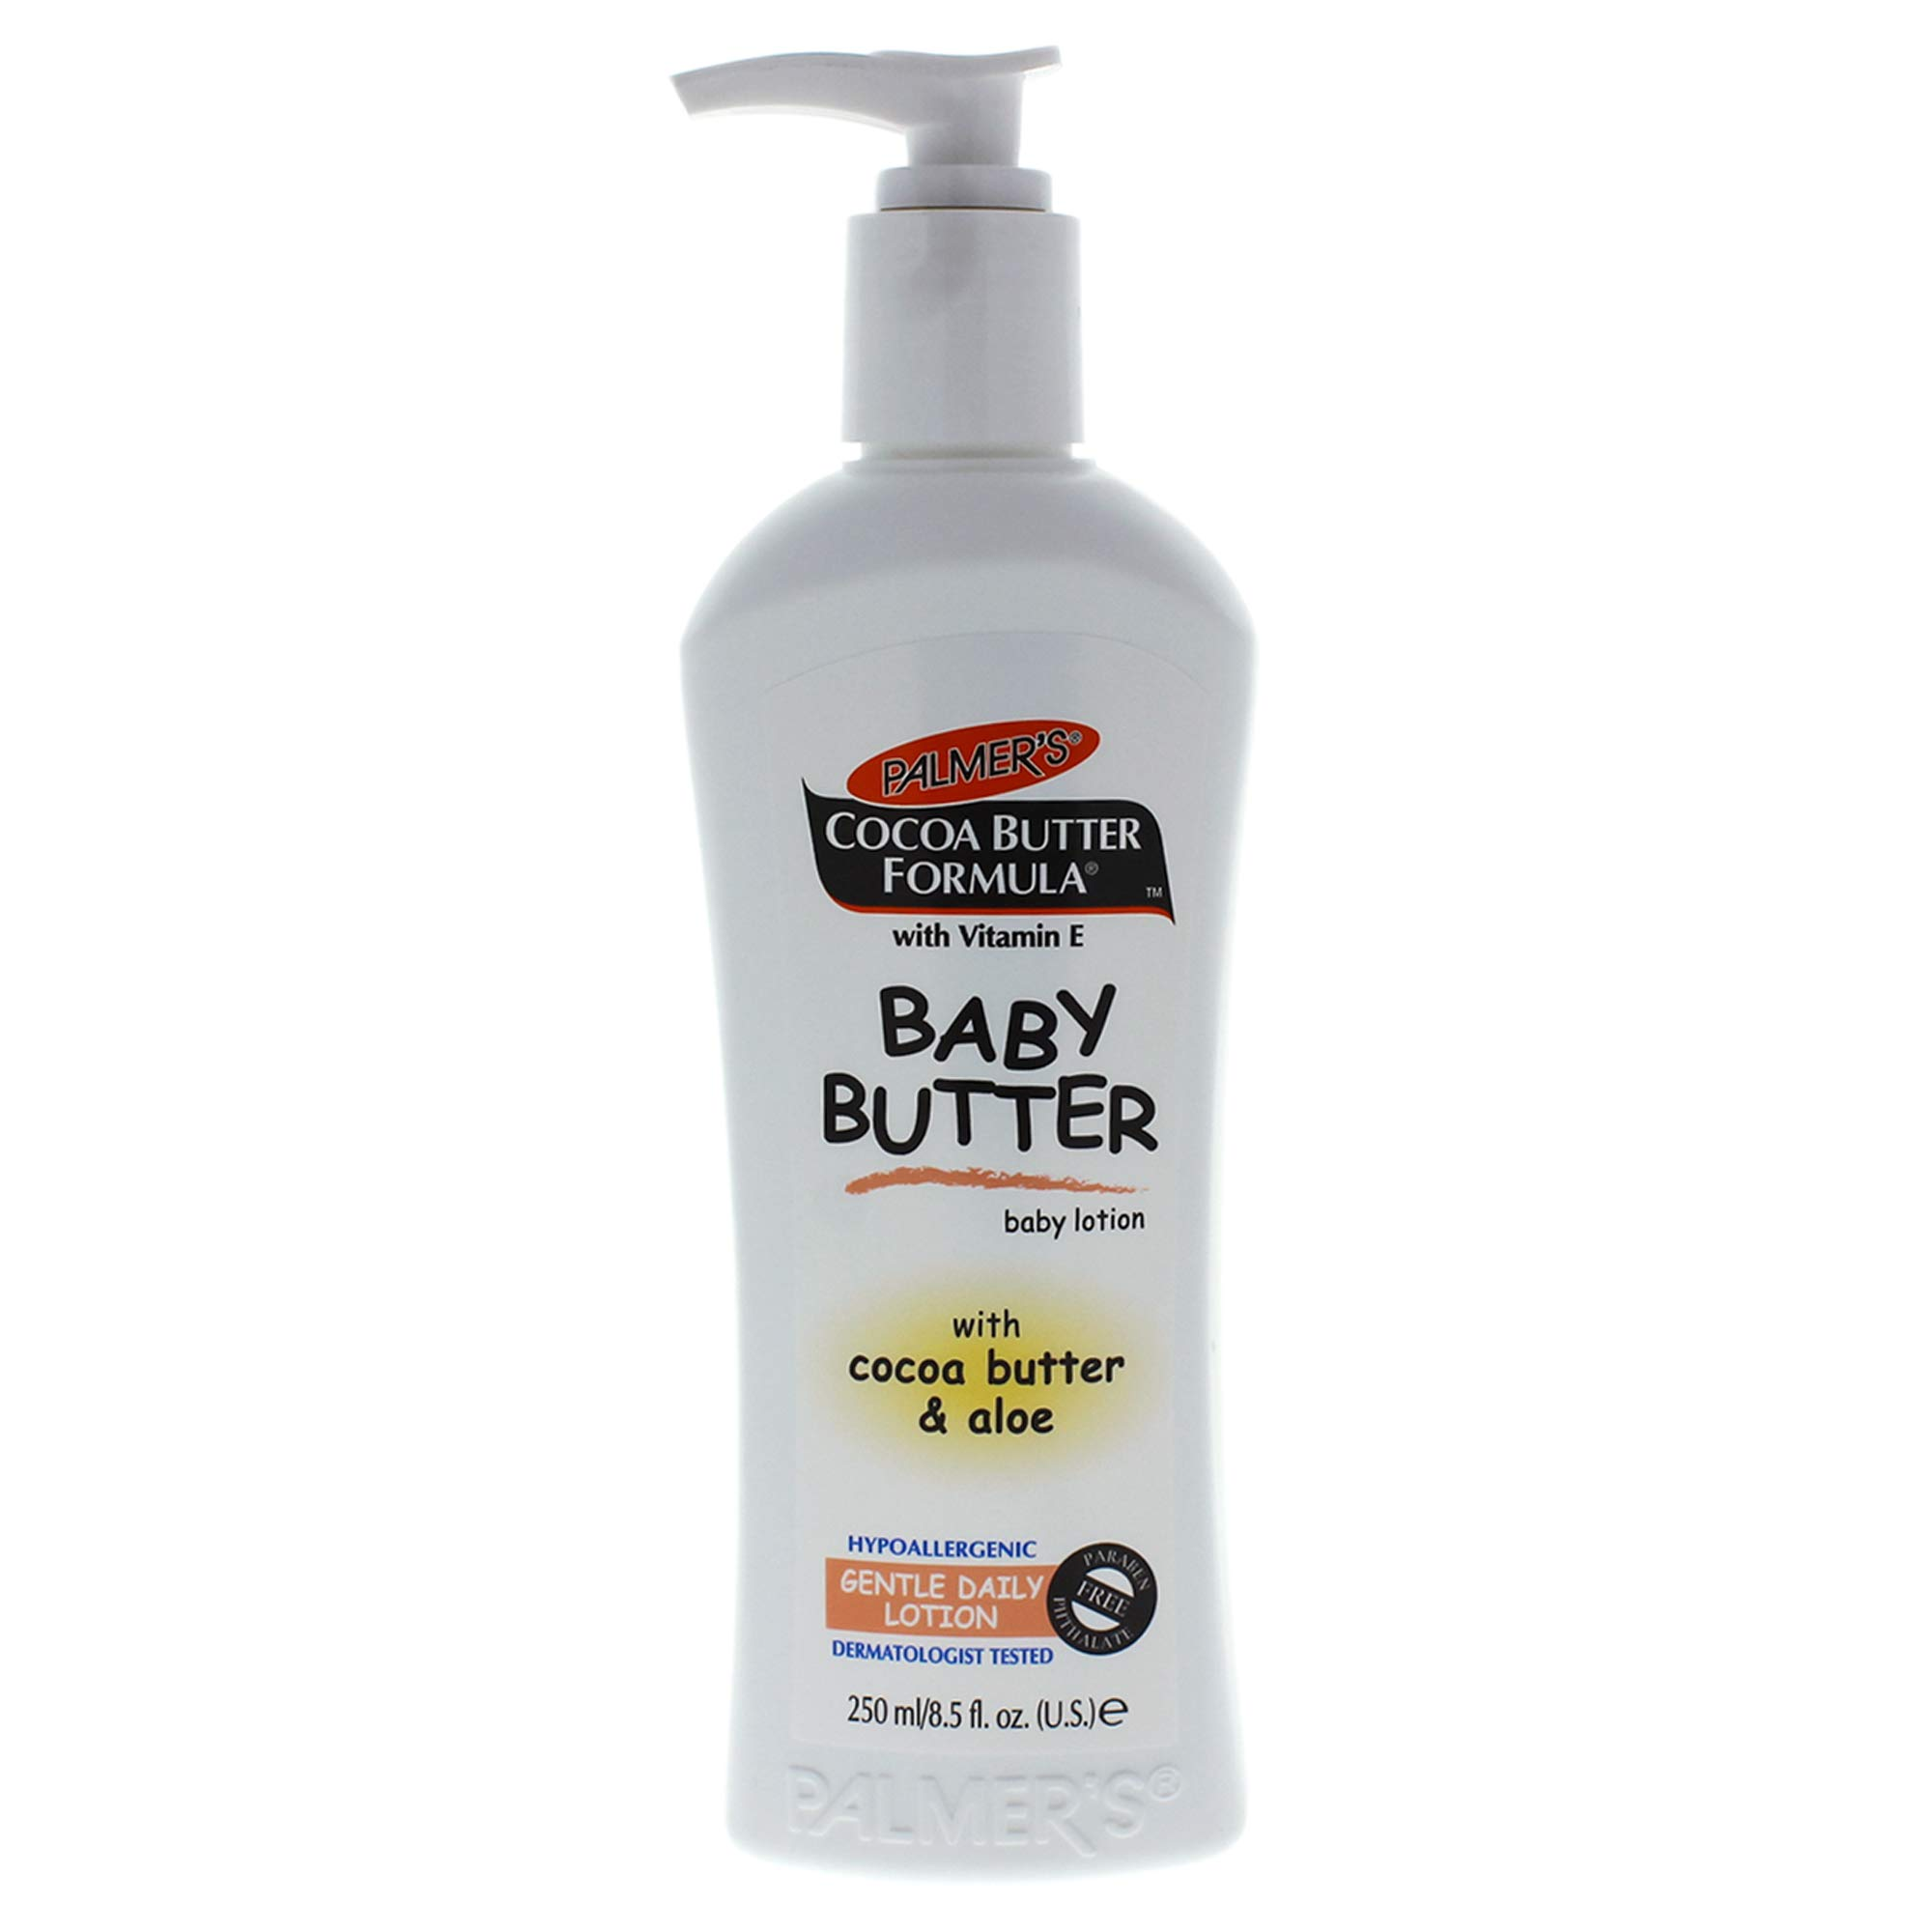 2b010631119 Palmer's Baby Butter Daily Lotion with Cocoa Butter and Aloe, 250 ml  product image